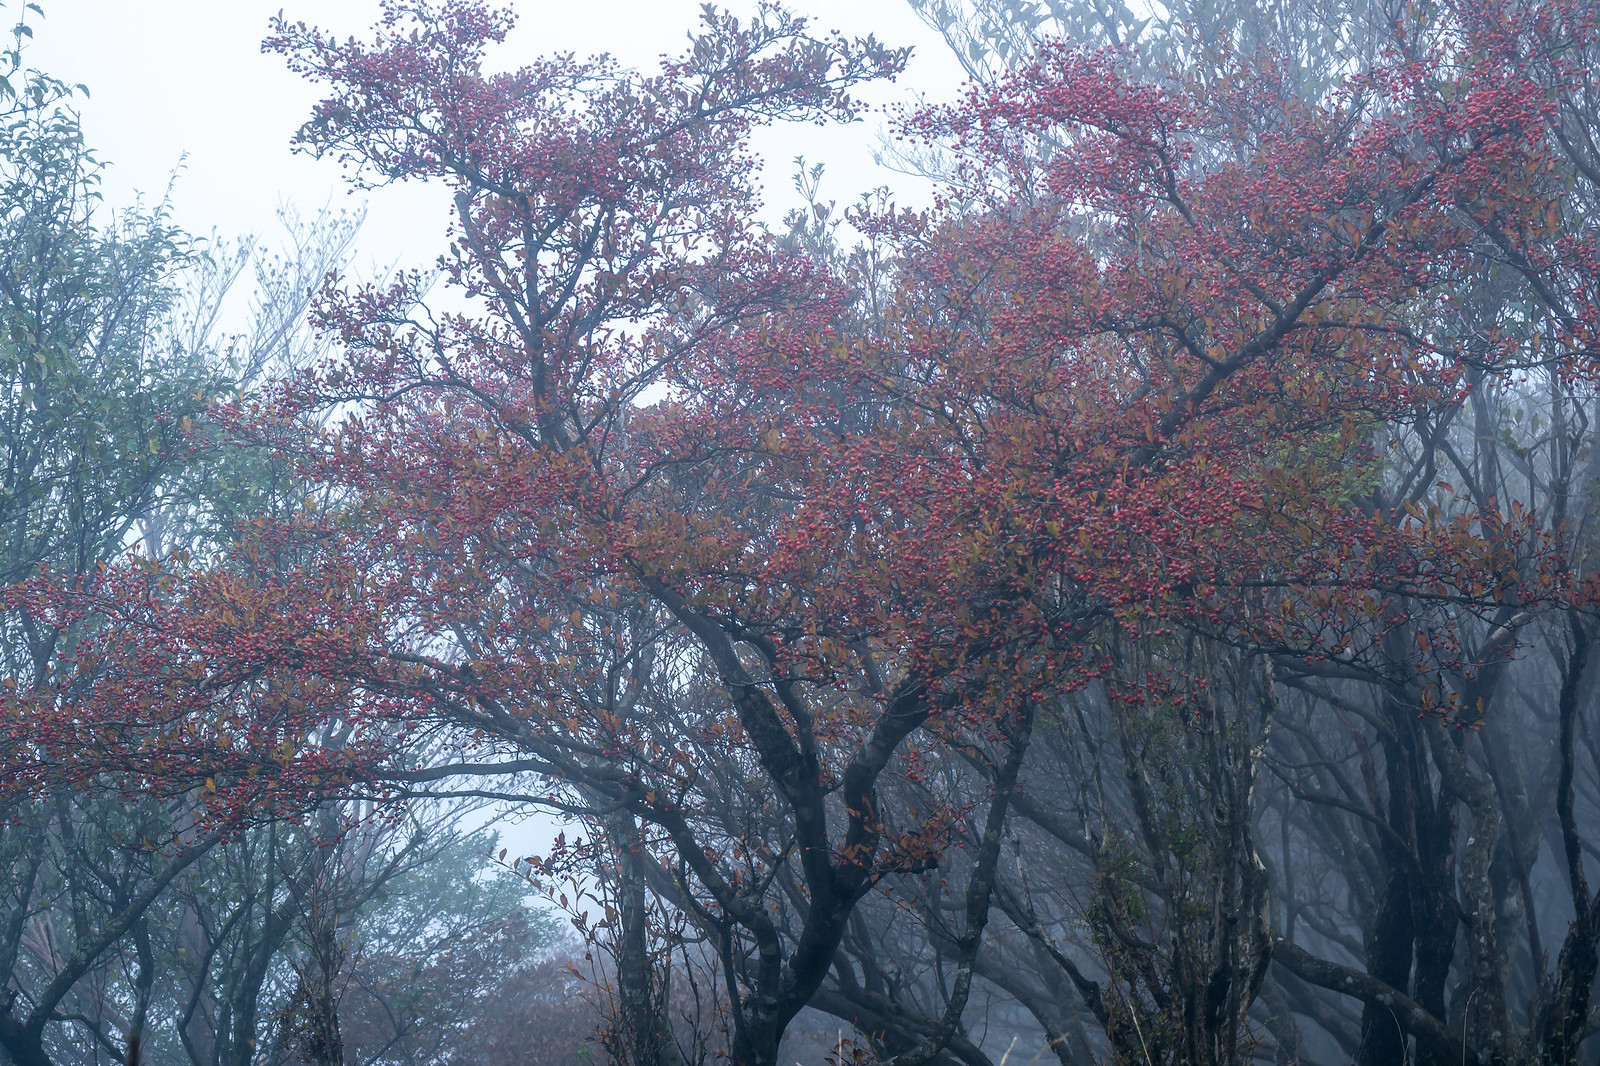 Berries in a fog